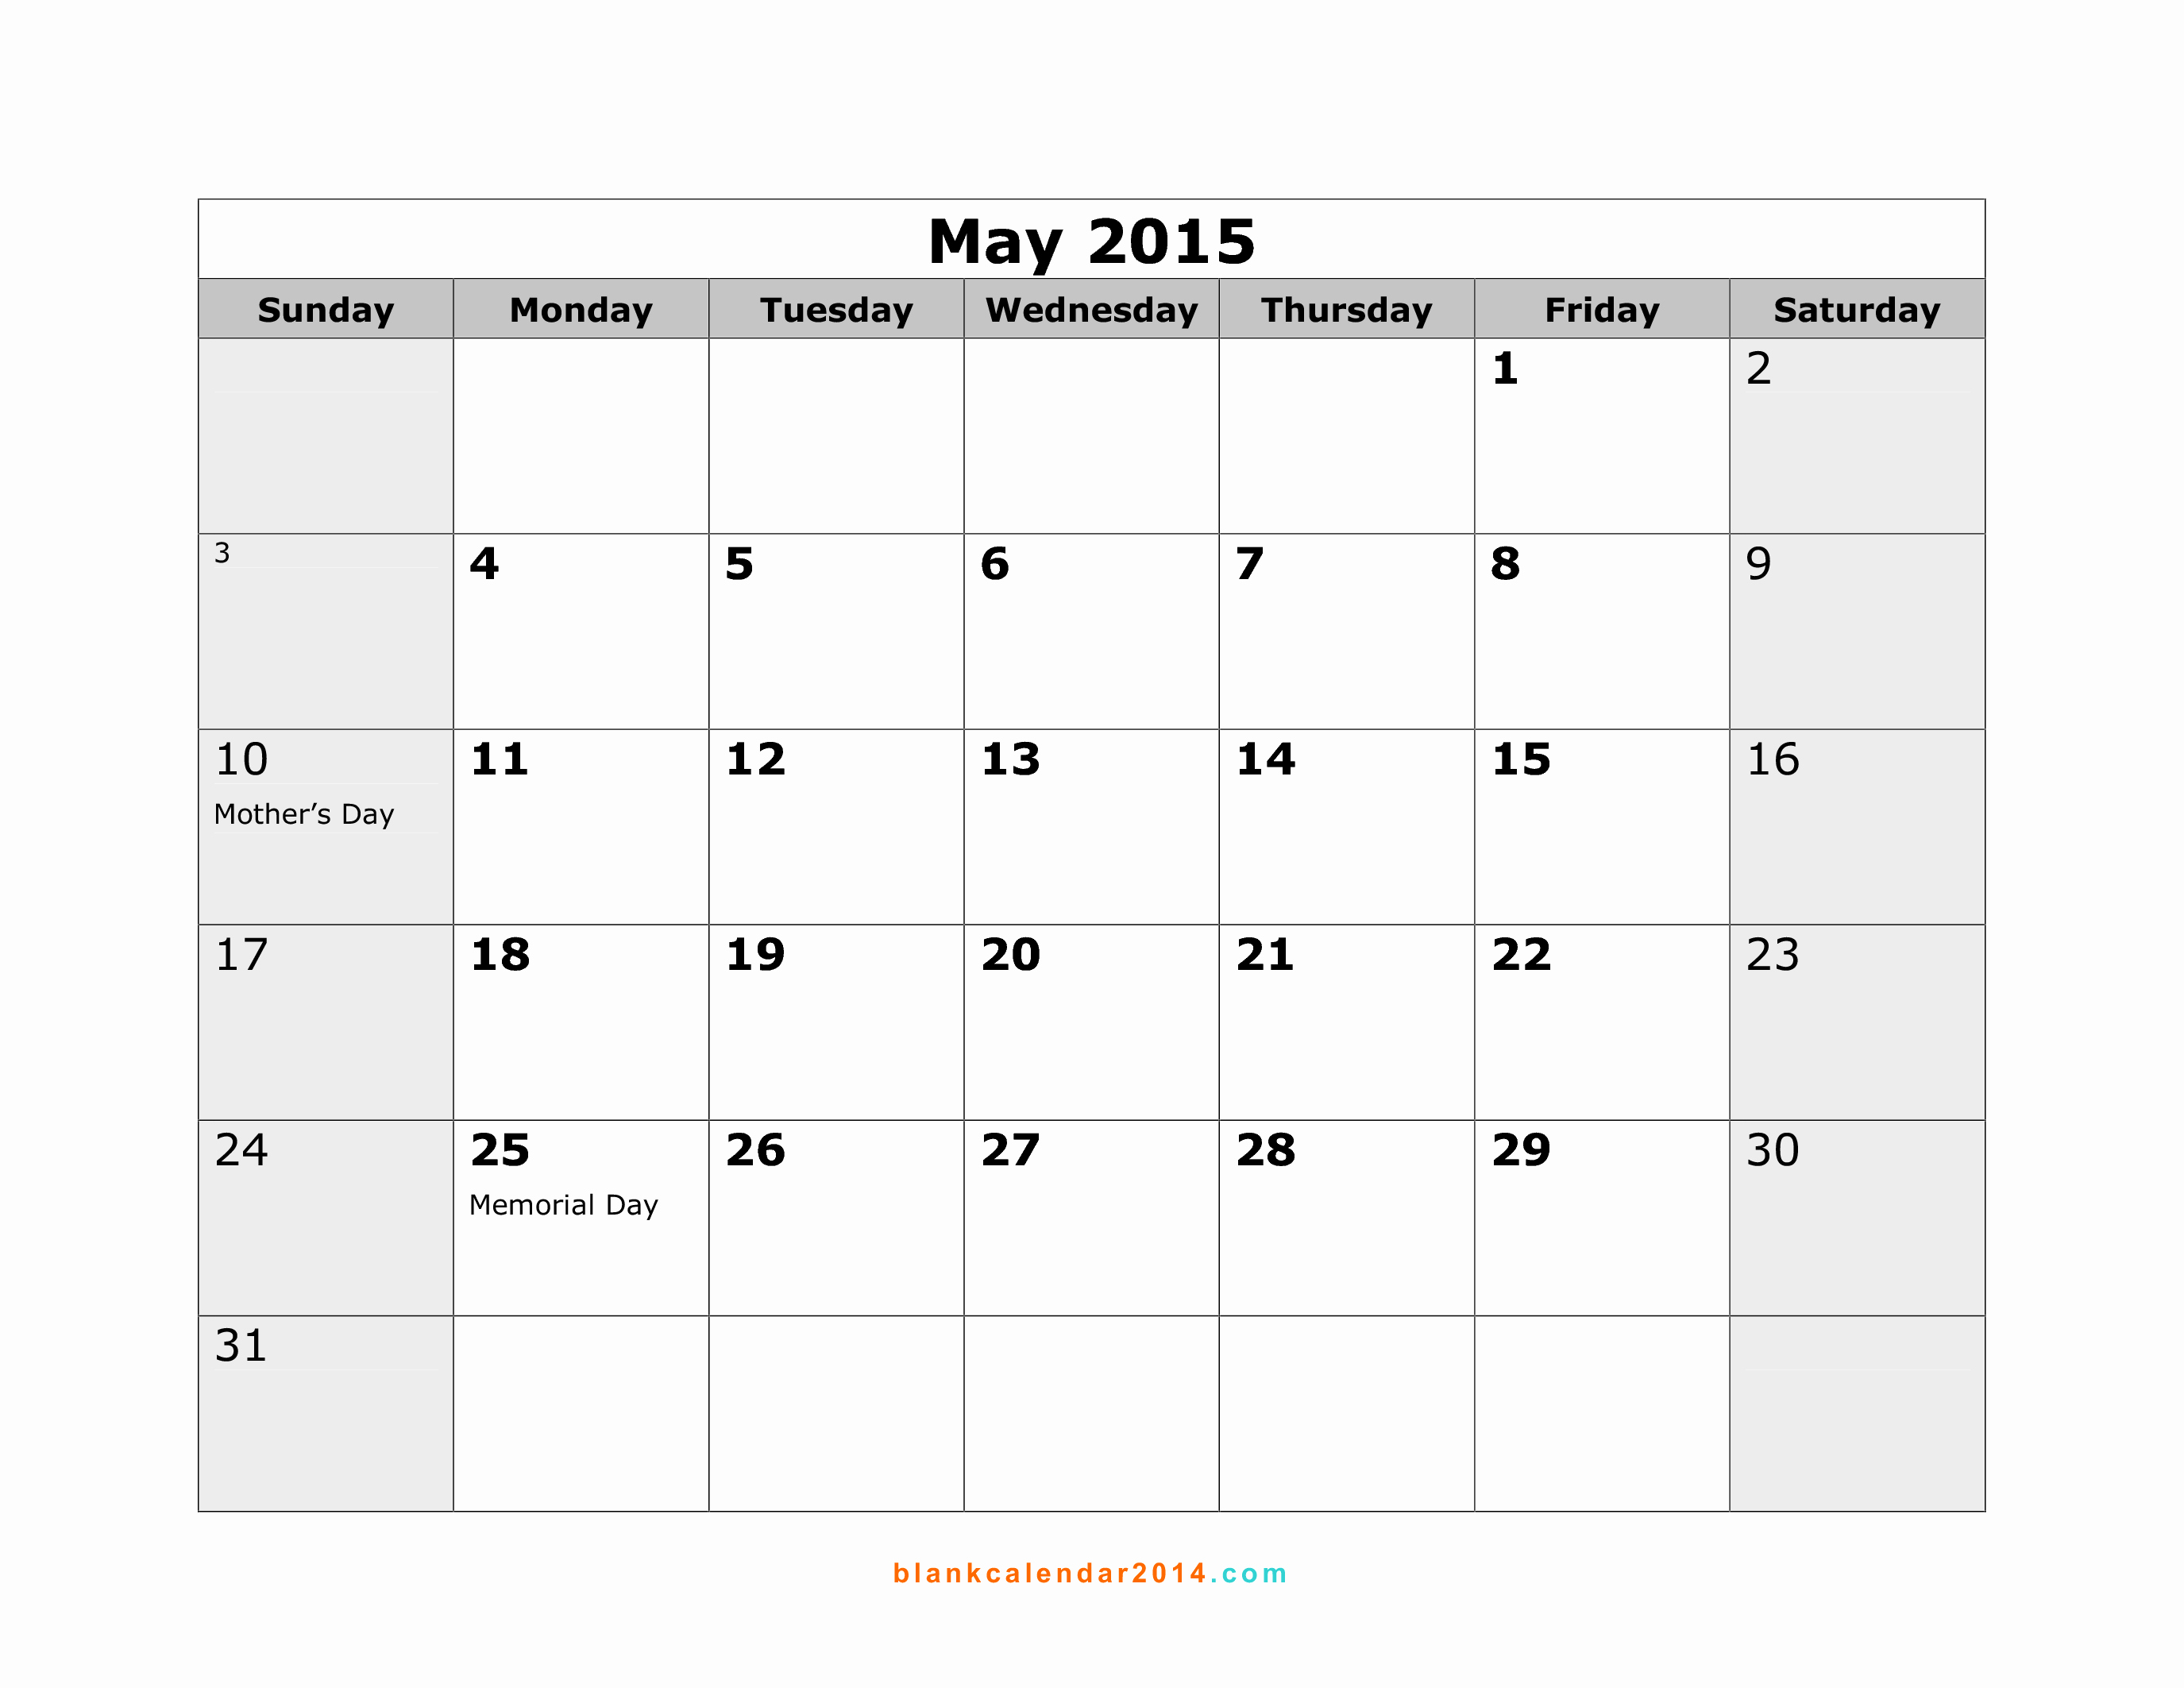 Calendar 2015 Printable with Holidays Fresh 5 Best Of May 2015 Calendar with Holidays Printable